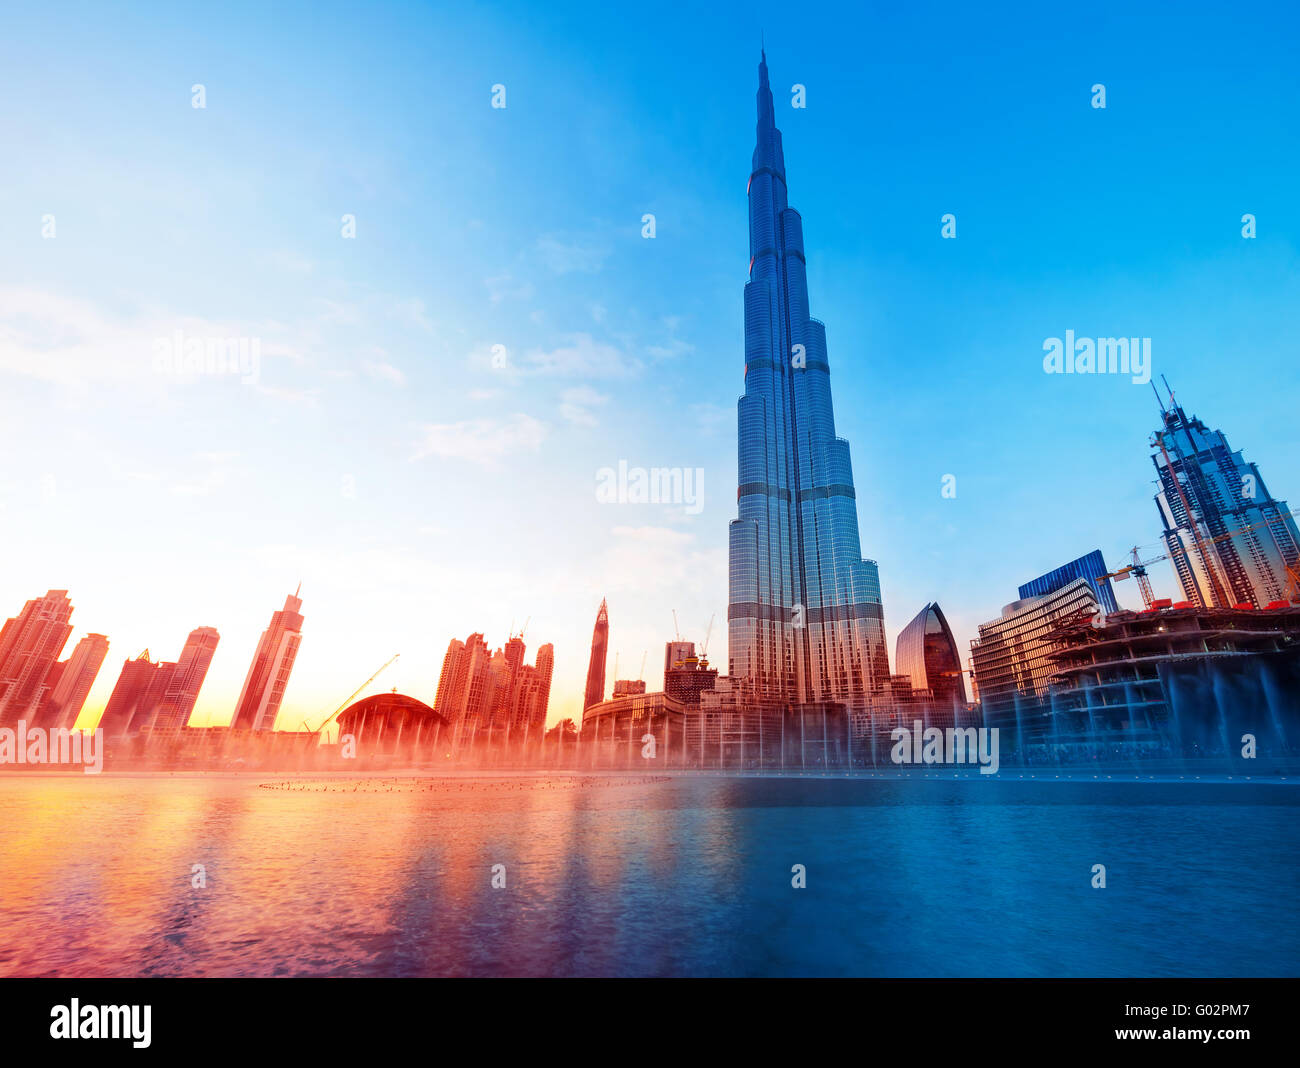 DUBAI, UAE - FEBRUARY 17: Burj Khalifa and fountain - world's tallest tower at 828m at beautiful sunset light - Stock Image